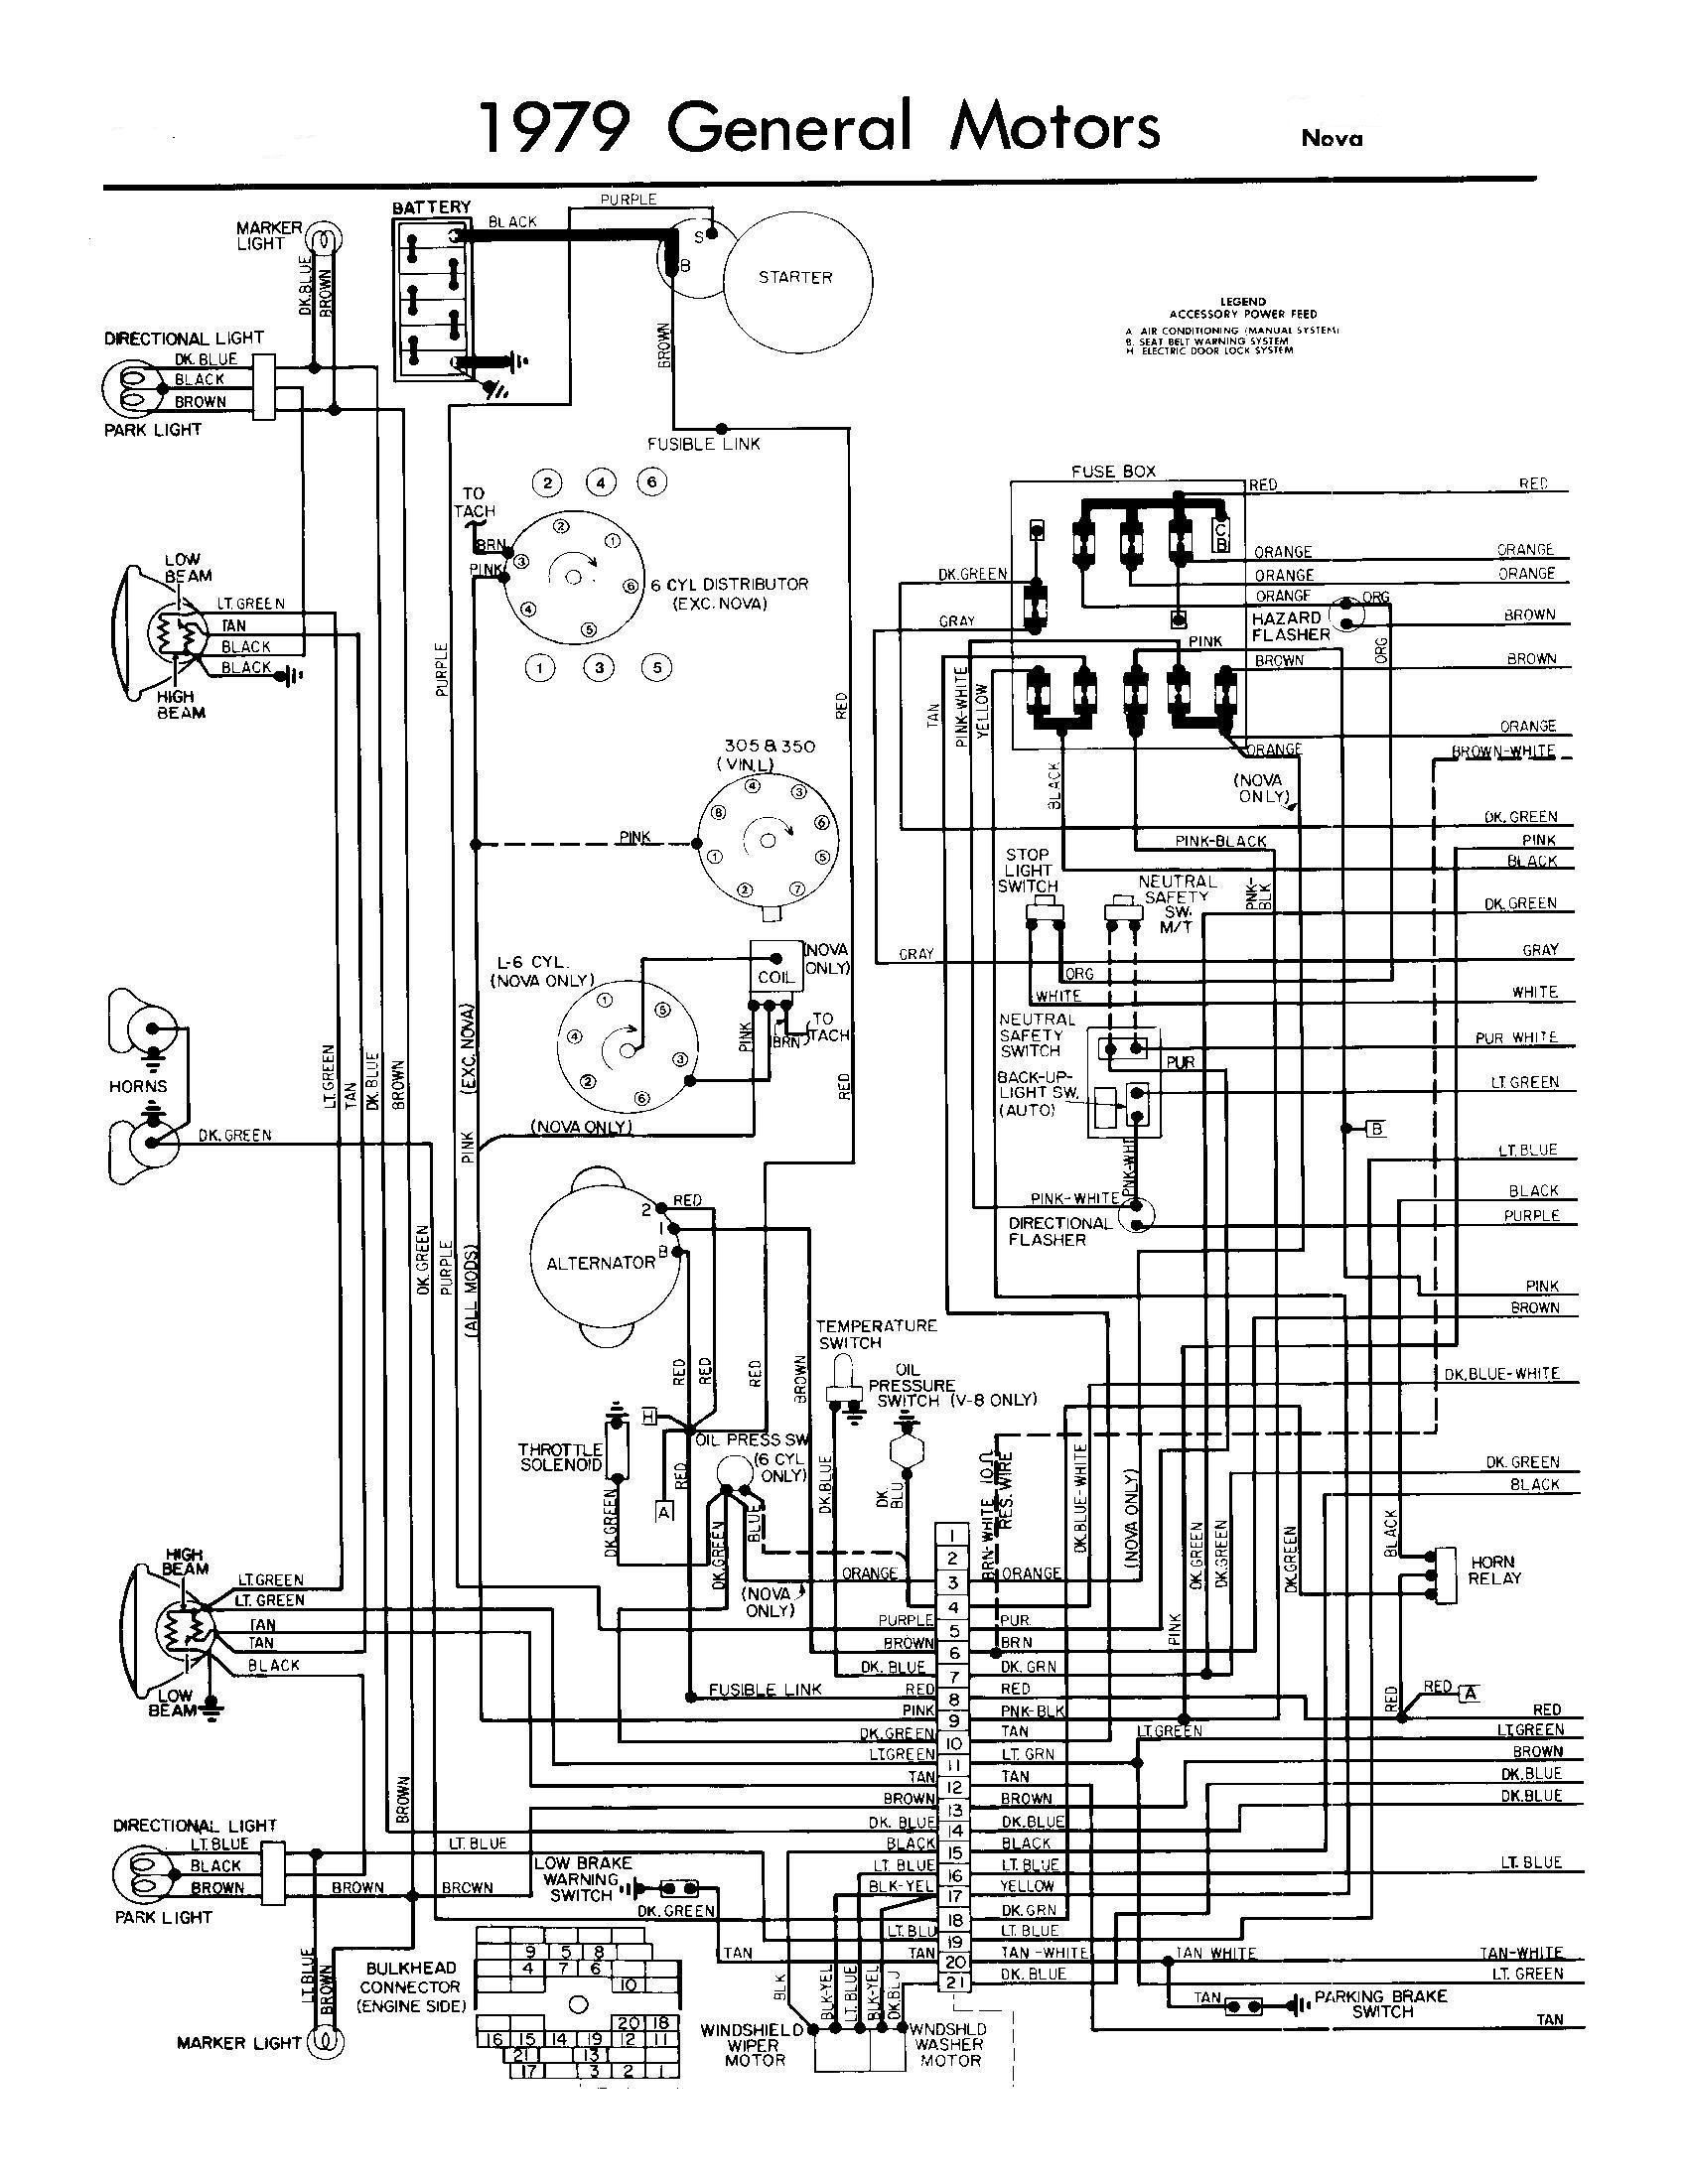 1979 chevy truck fuse box diagram wiring schematic diy enthusiasts rh okdrywall co  1979 chevy c10 fuse box diagram